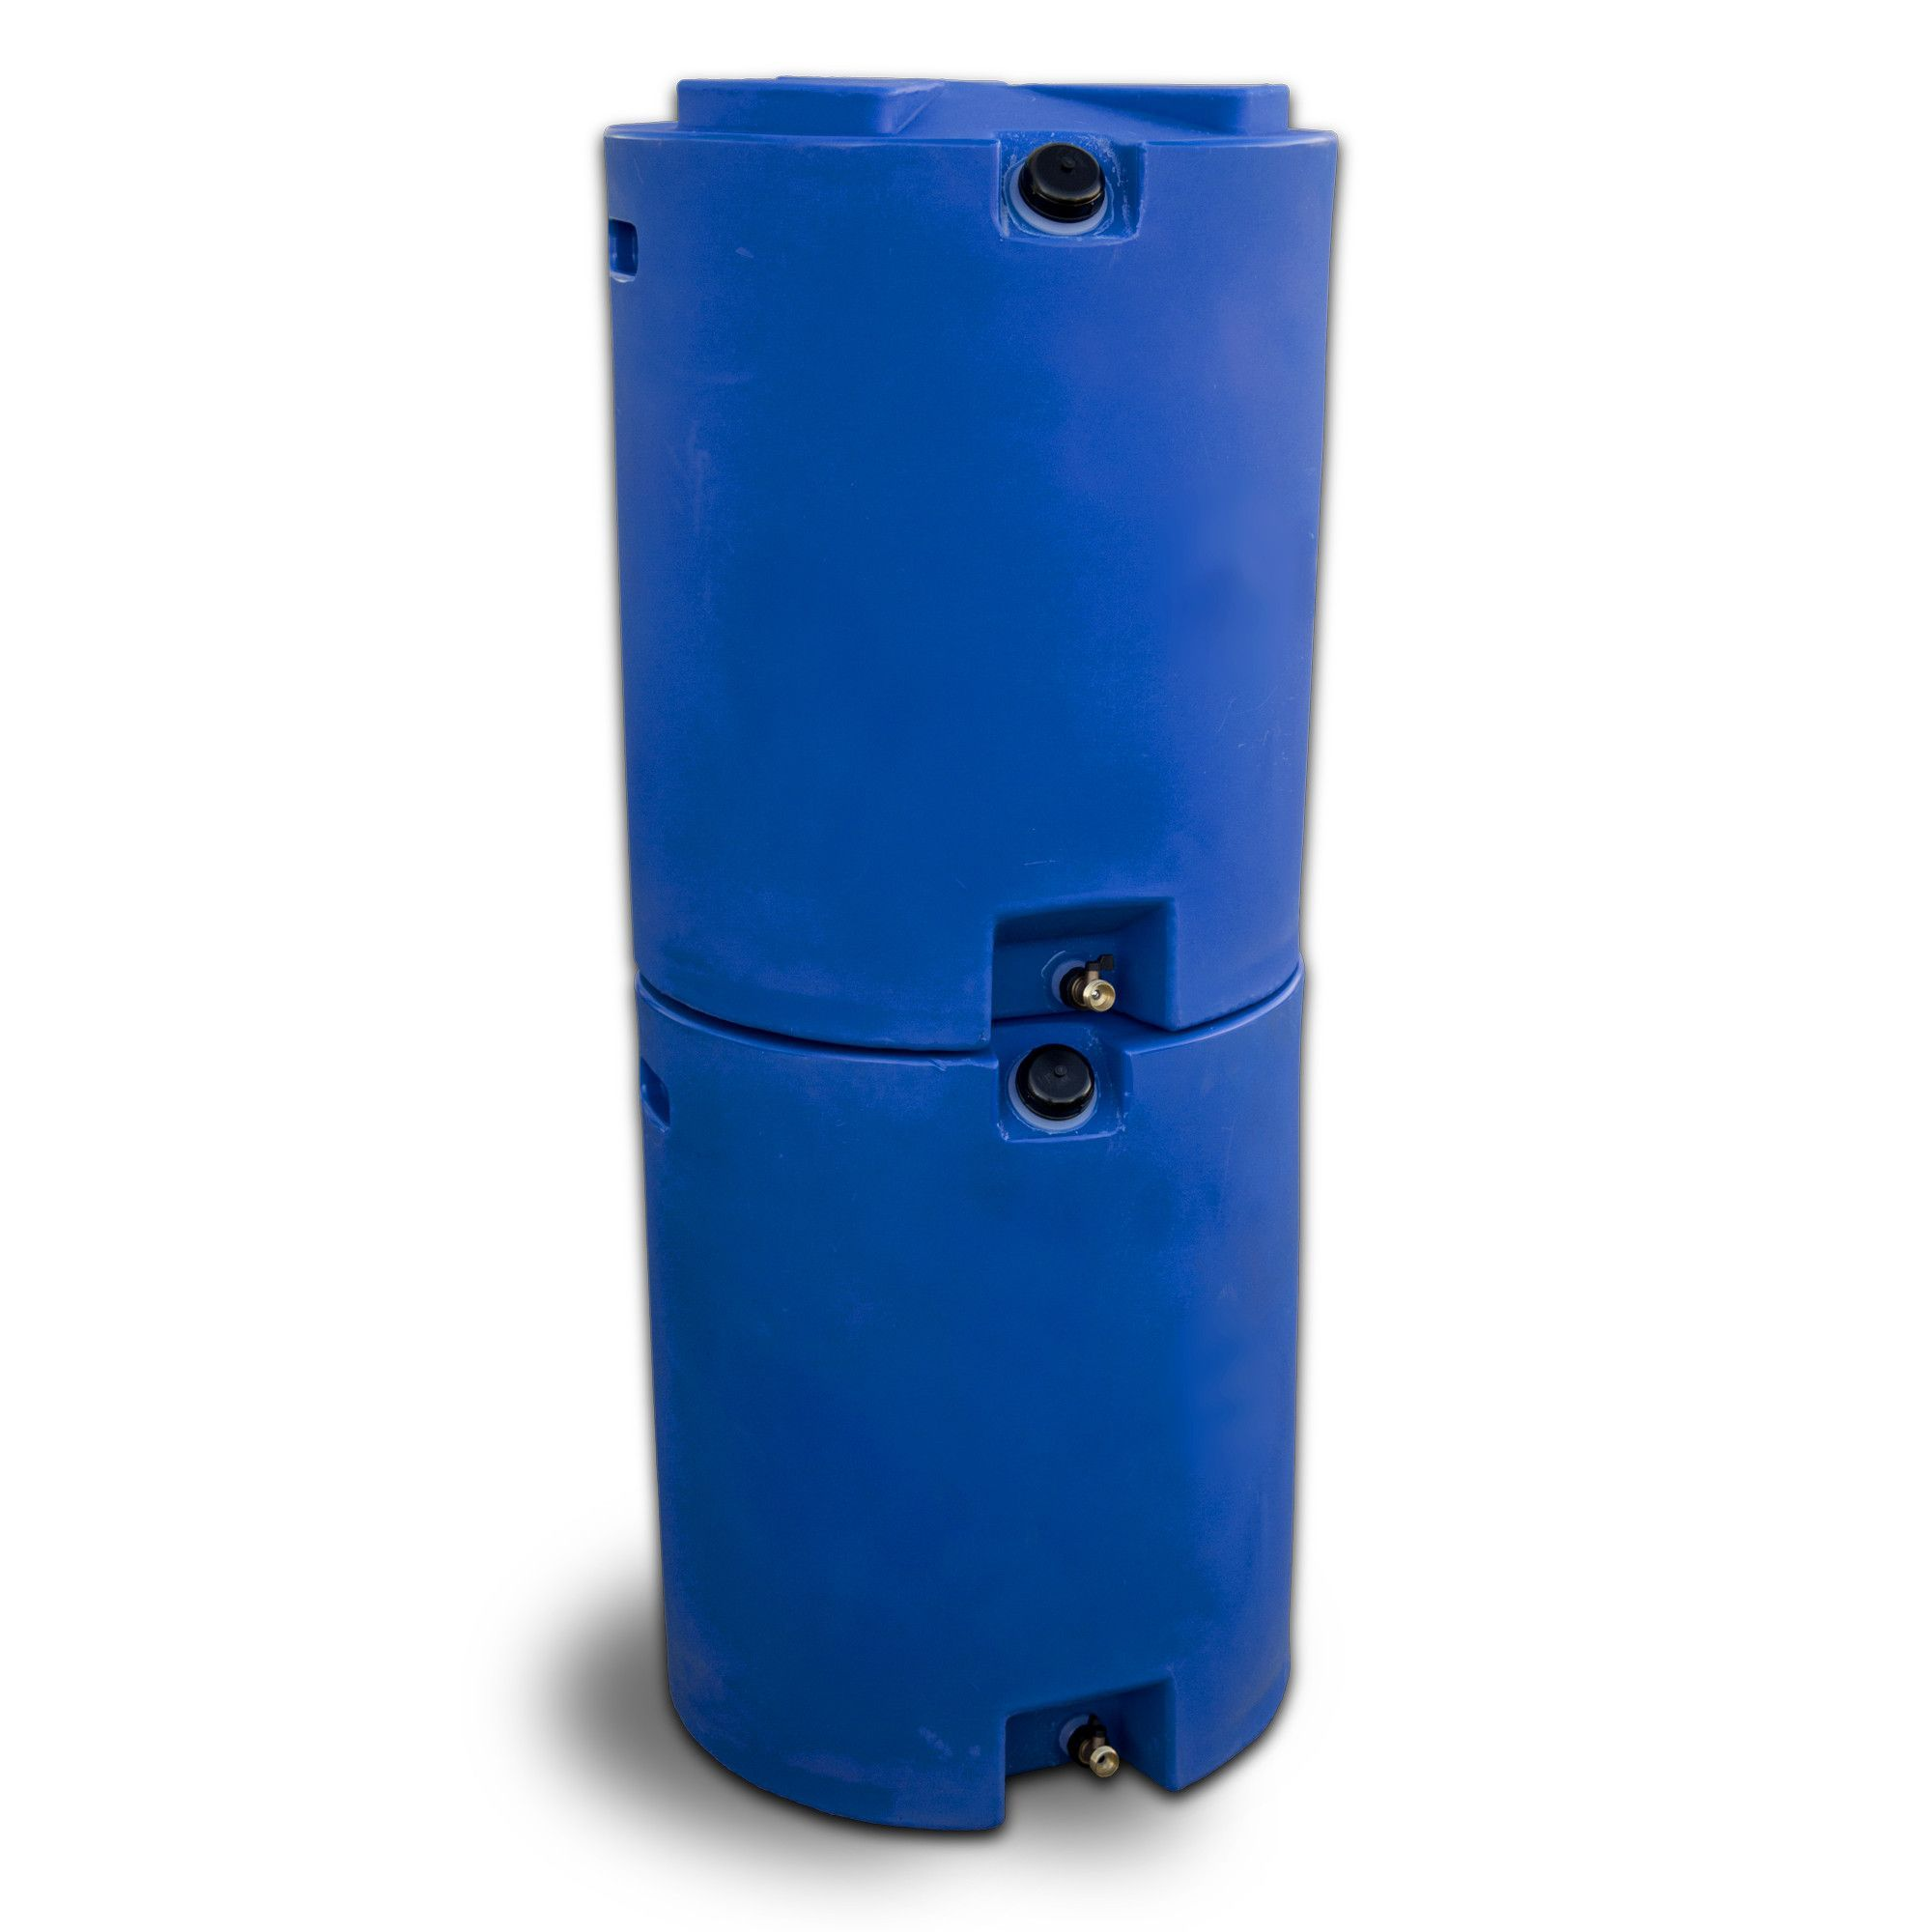 Water Storage Tank Water Storage Water Storage Tanks Water Storage Containers